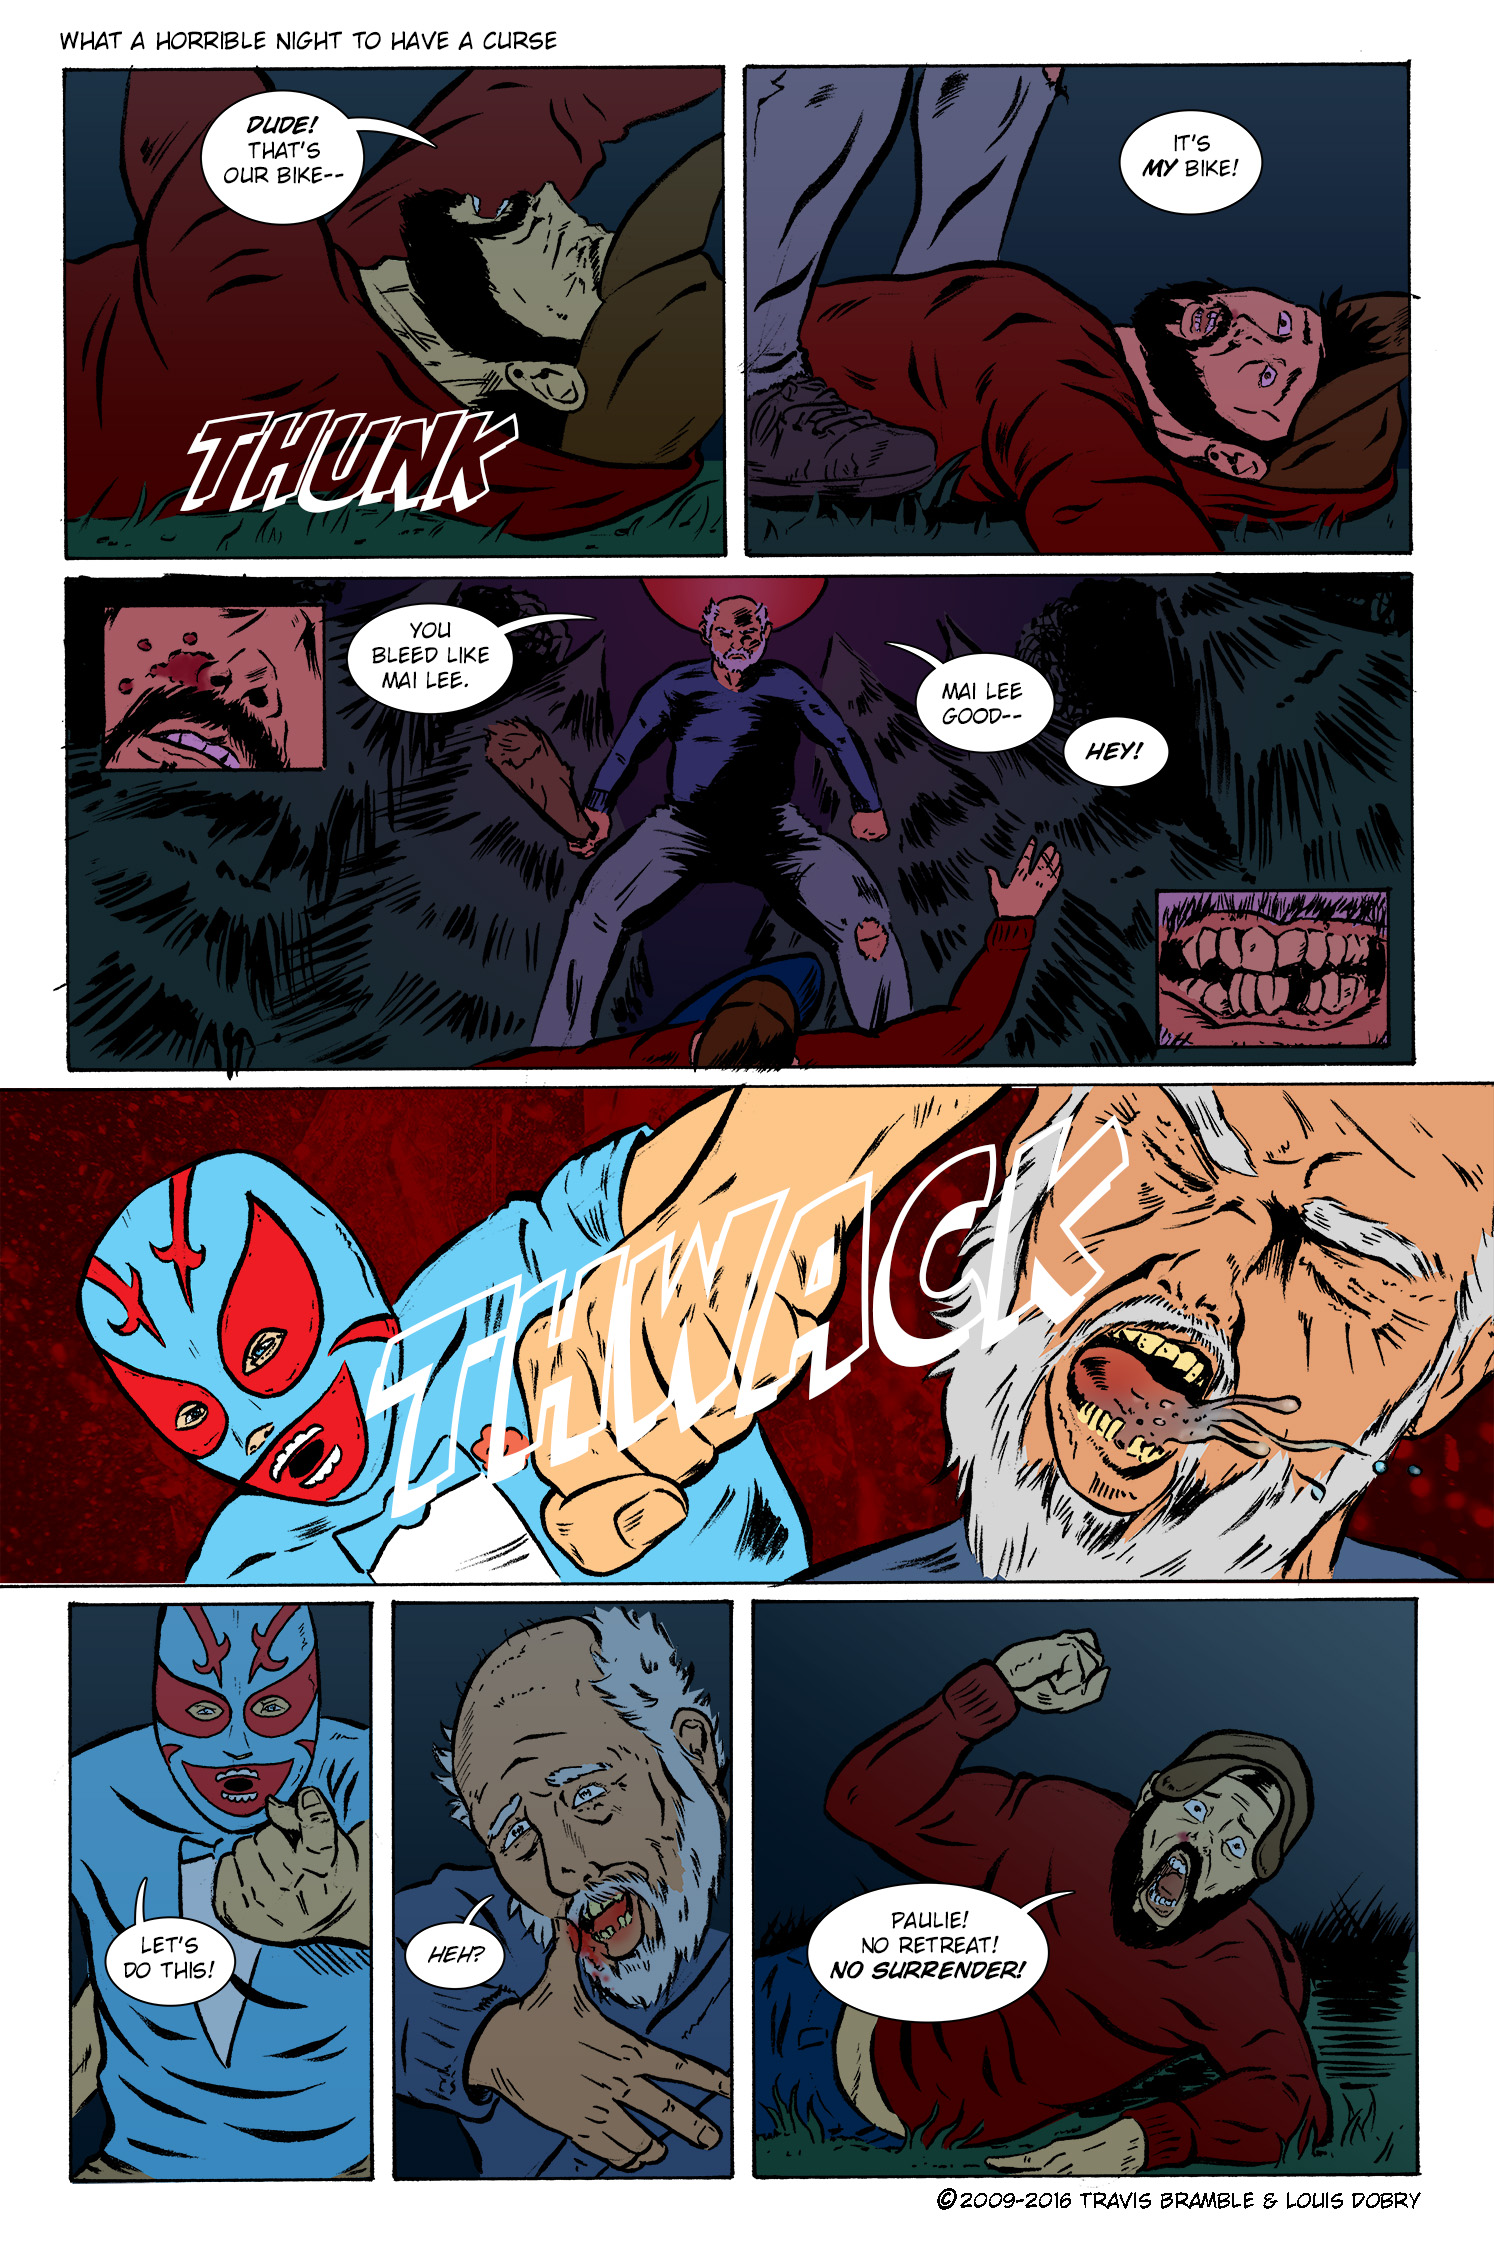 What A Horrible Night To Have A Curse pg. 6